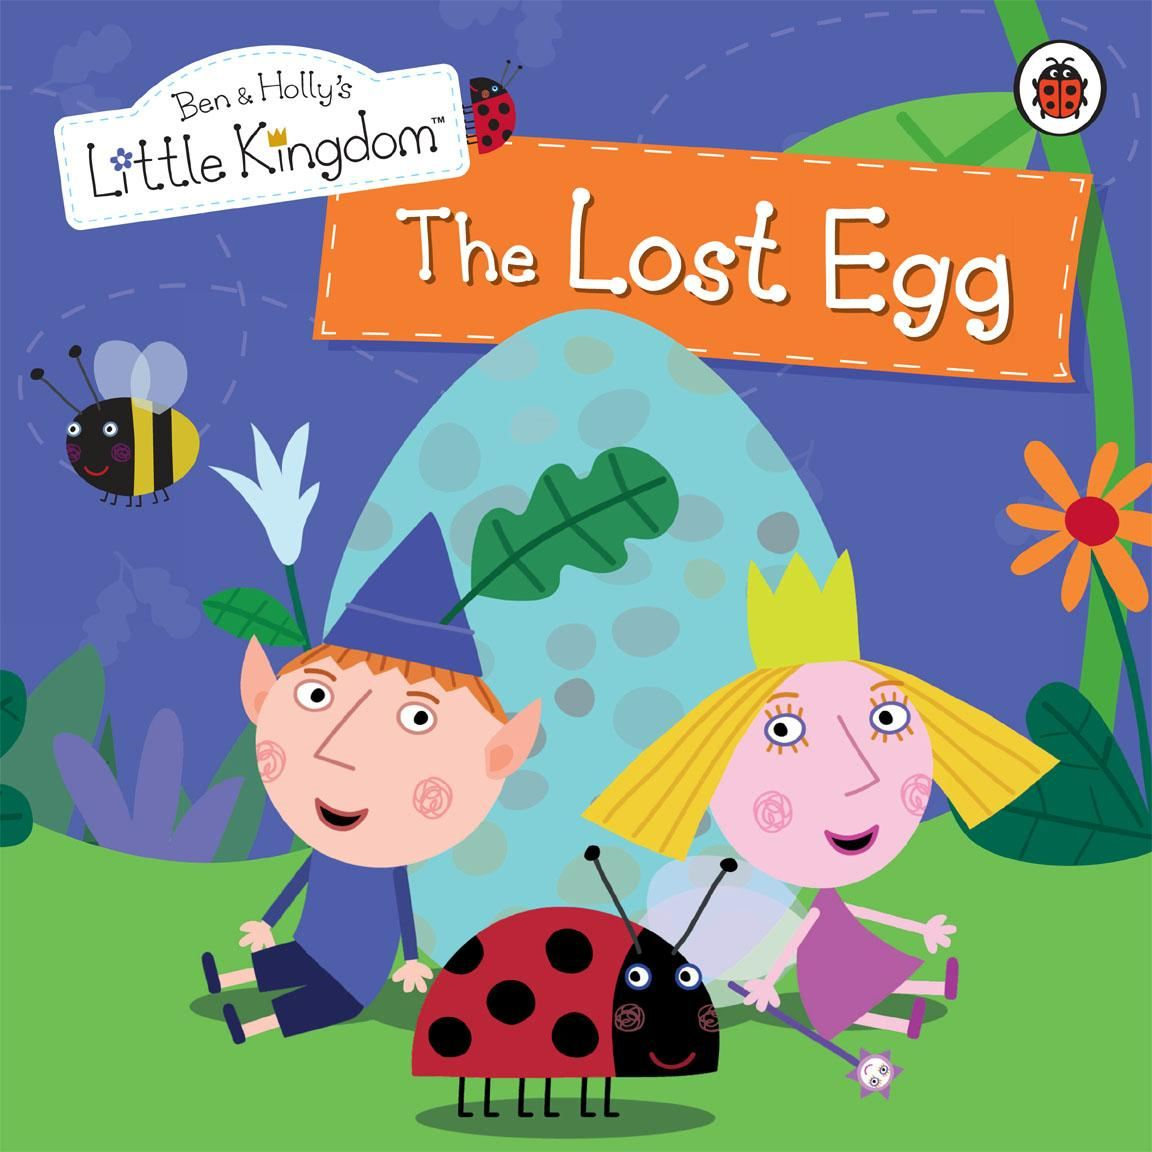 Ben and Holly's Little Kingdom: The Lost Egg Storybook The Lost Egg Storybook